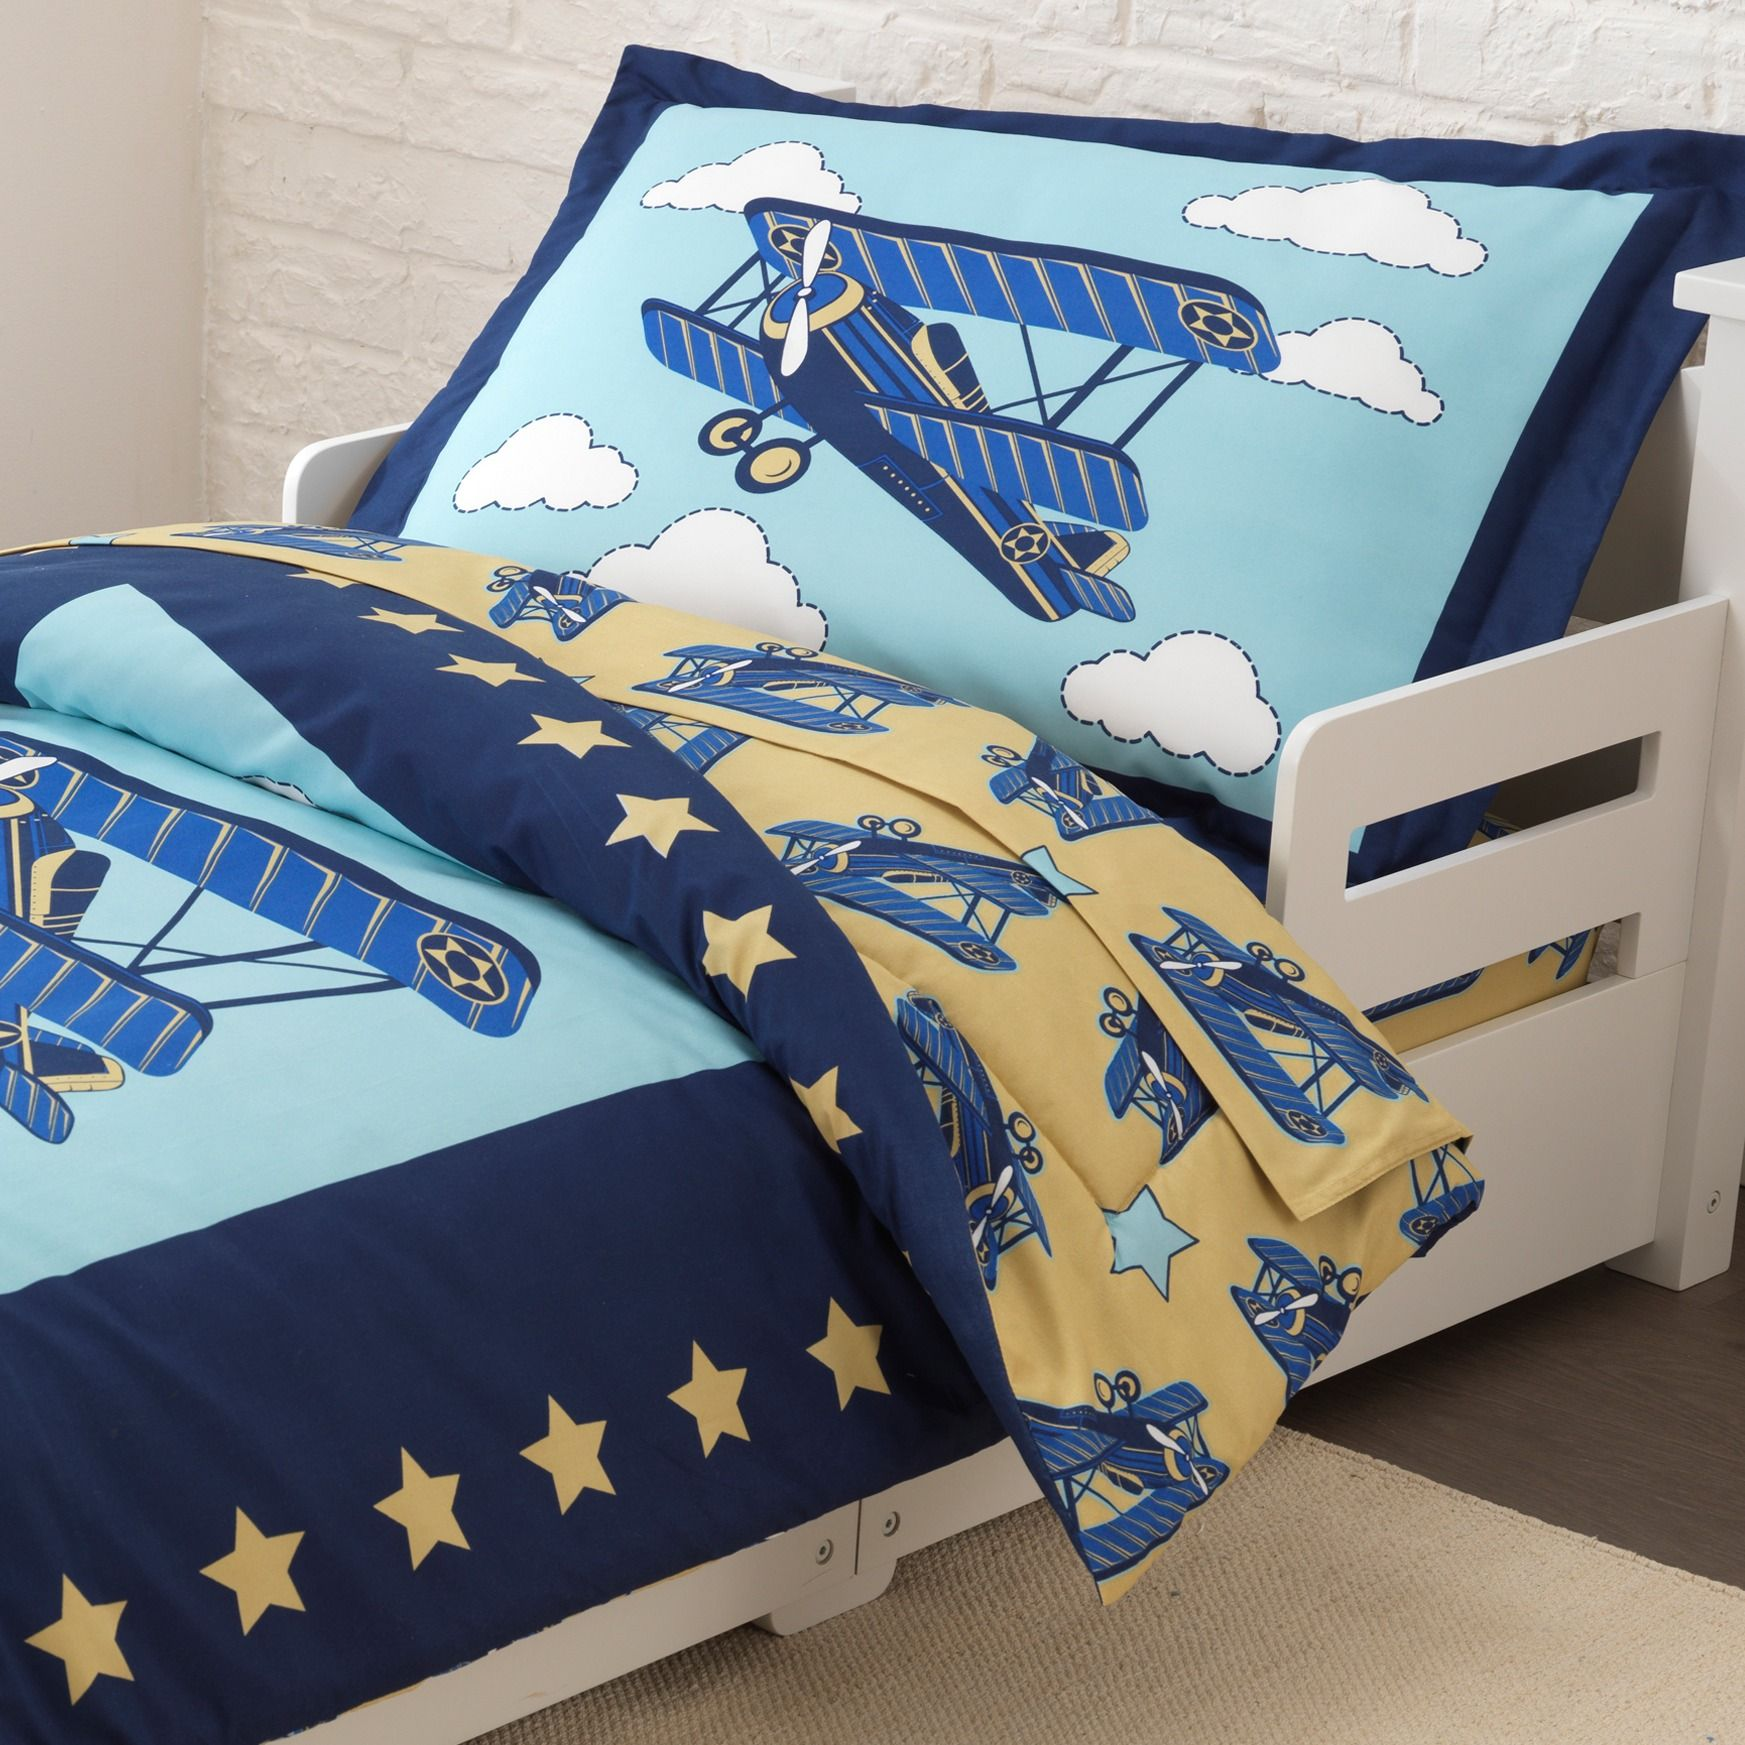 Kidkraft Airplane Toddler Bedding Set